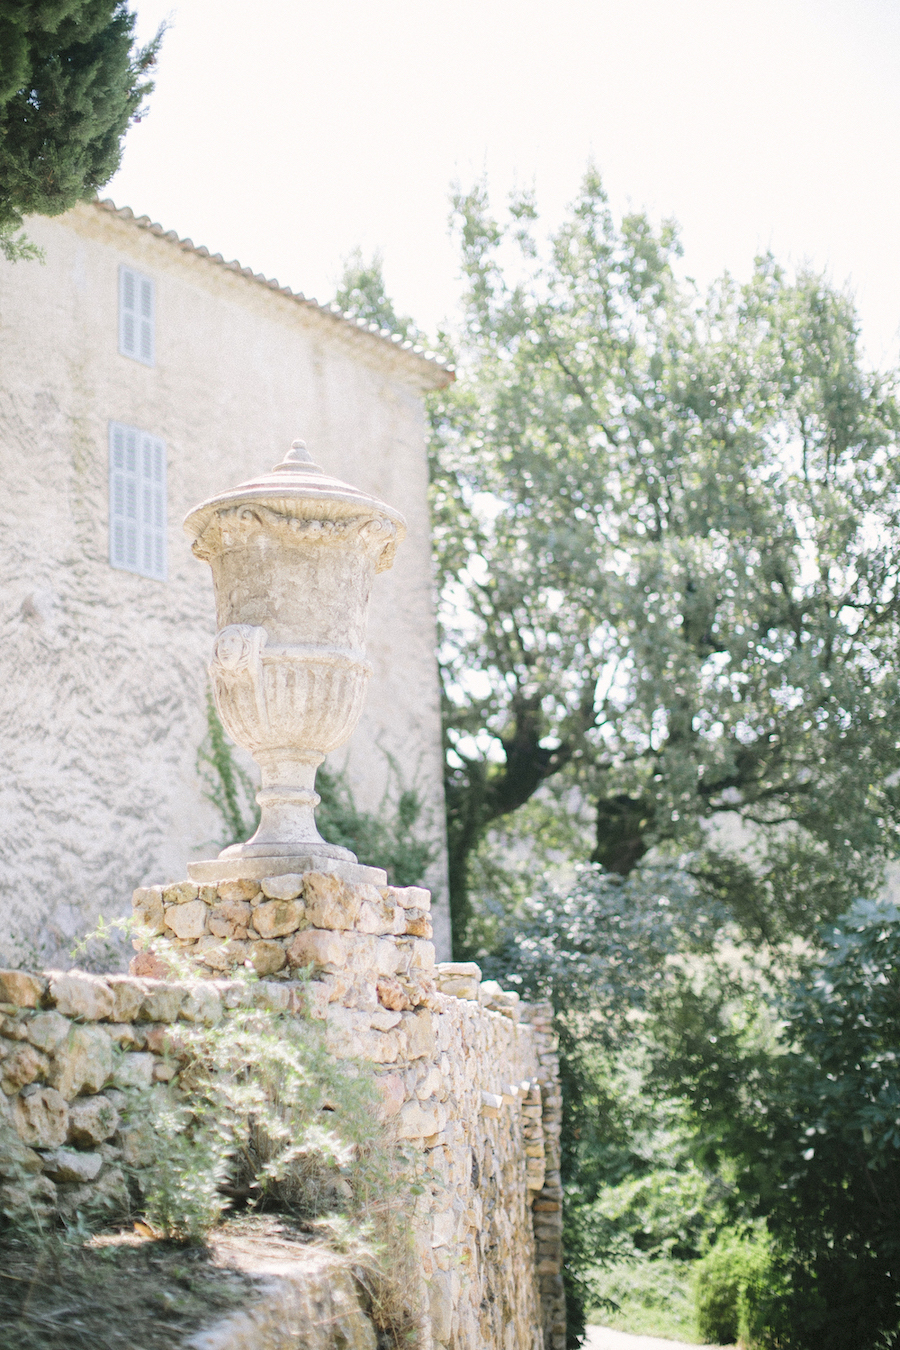 saya-photography-wedding-photographer-venue-provence-chateau-de-robernier-.jpg